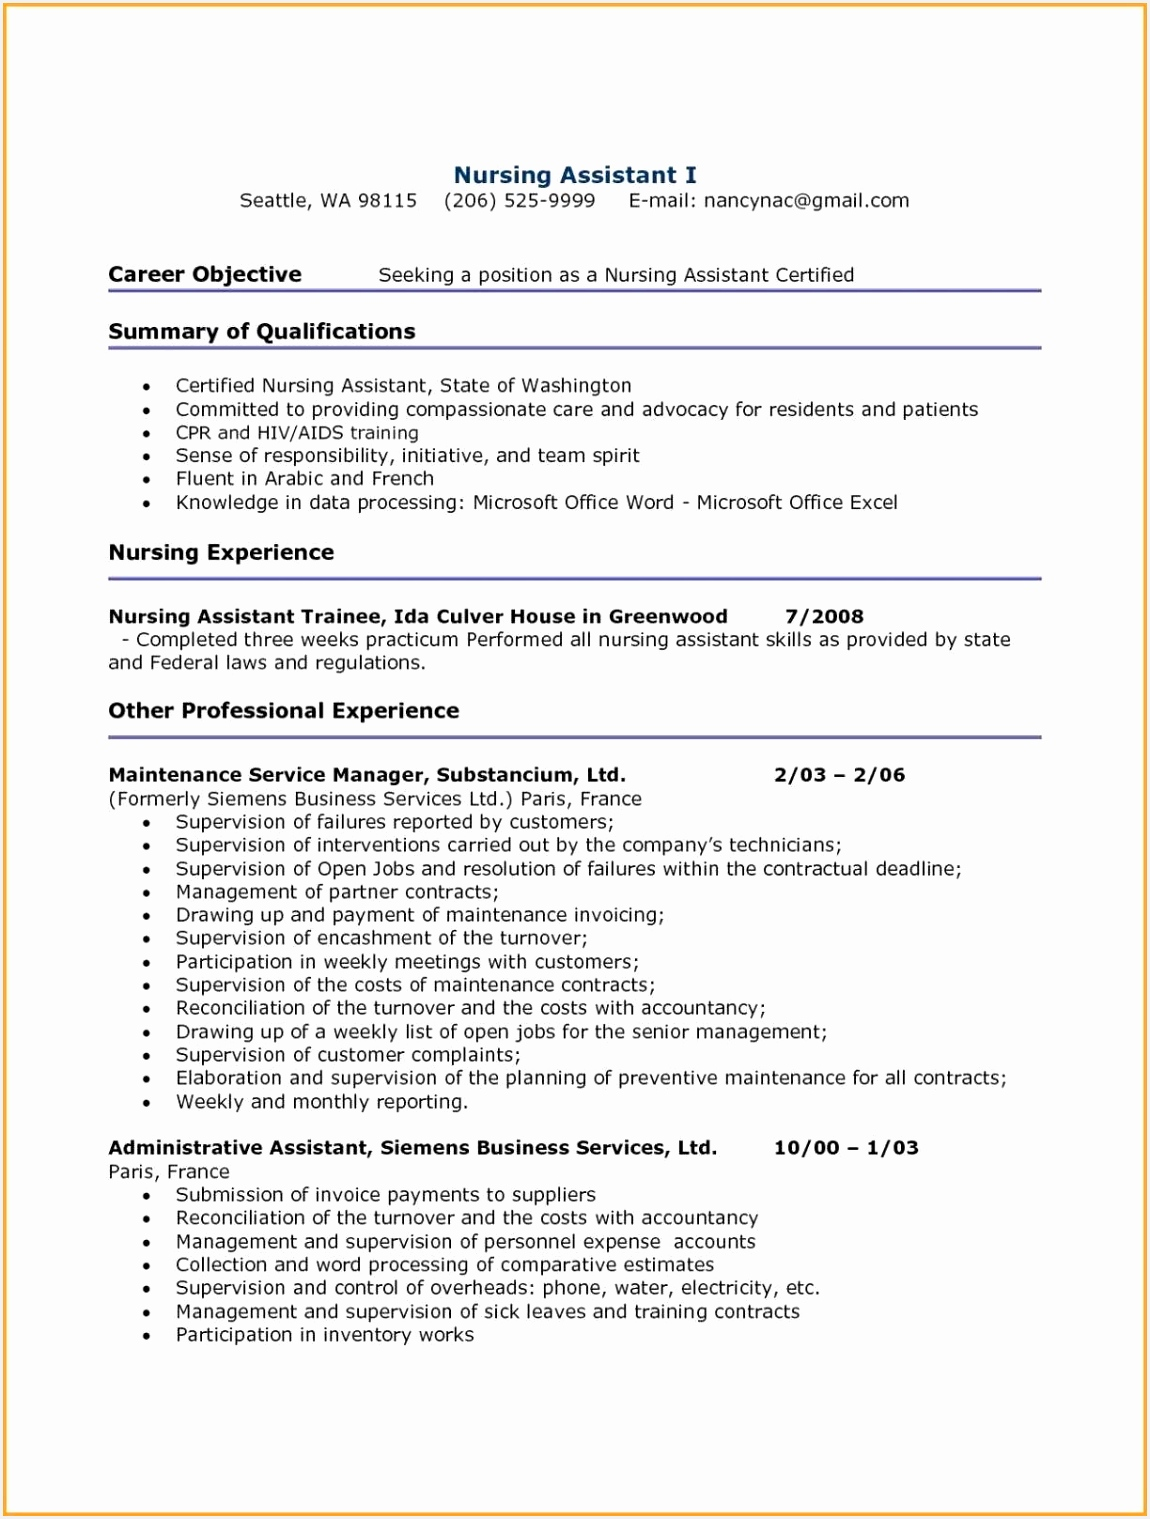 Microsoft Trainer Sample Resume Rduqf Awesome Cover Letter Email format Lovely Email Cover Letters New Resume Of Microsoft Trainer Sample Resume Bvgrh Unique Sample Pitch for Resume Popular Good Examples Resumes Inspirational